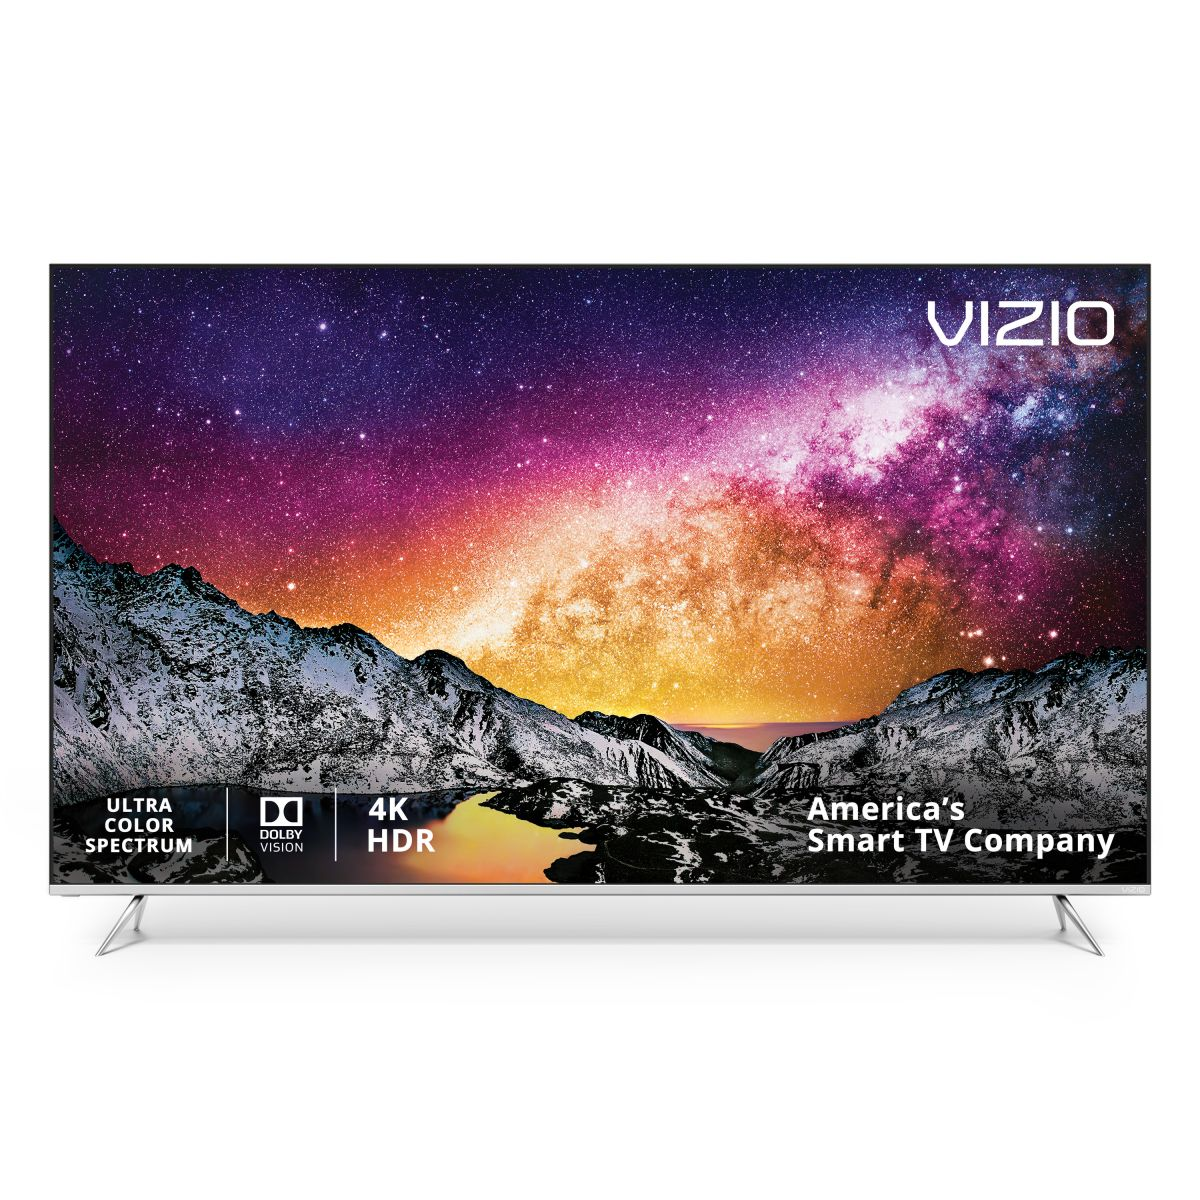 8f450096b The best cheap 4K TV deals and sale prices in the US - May 2019 ...